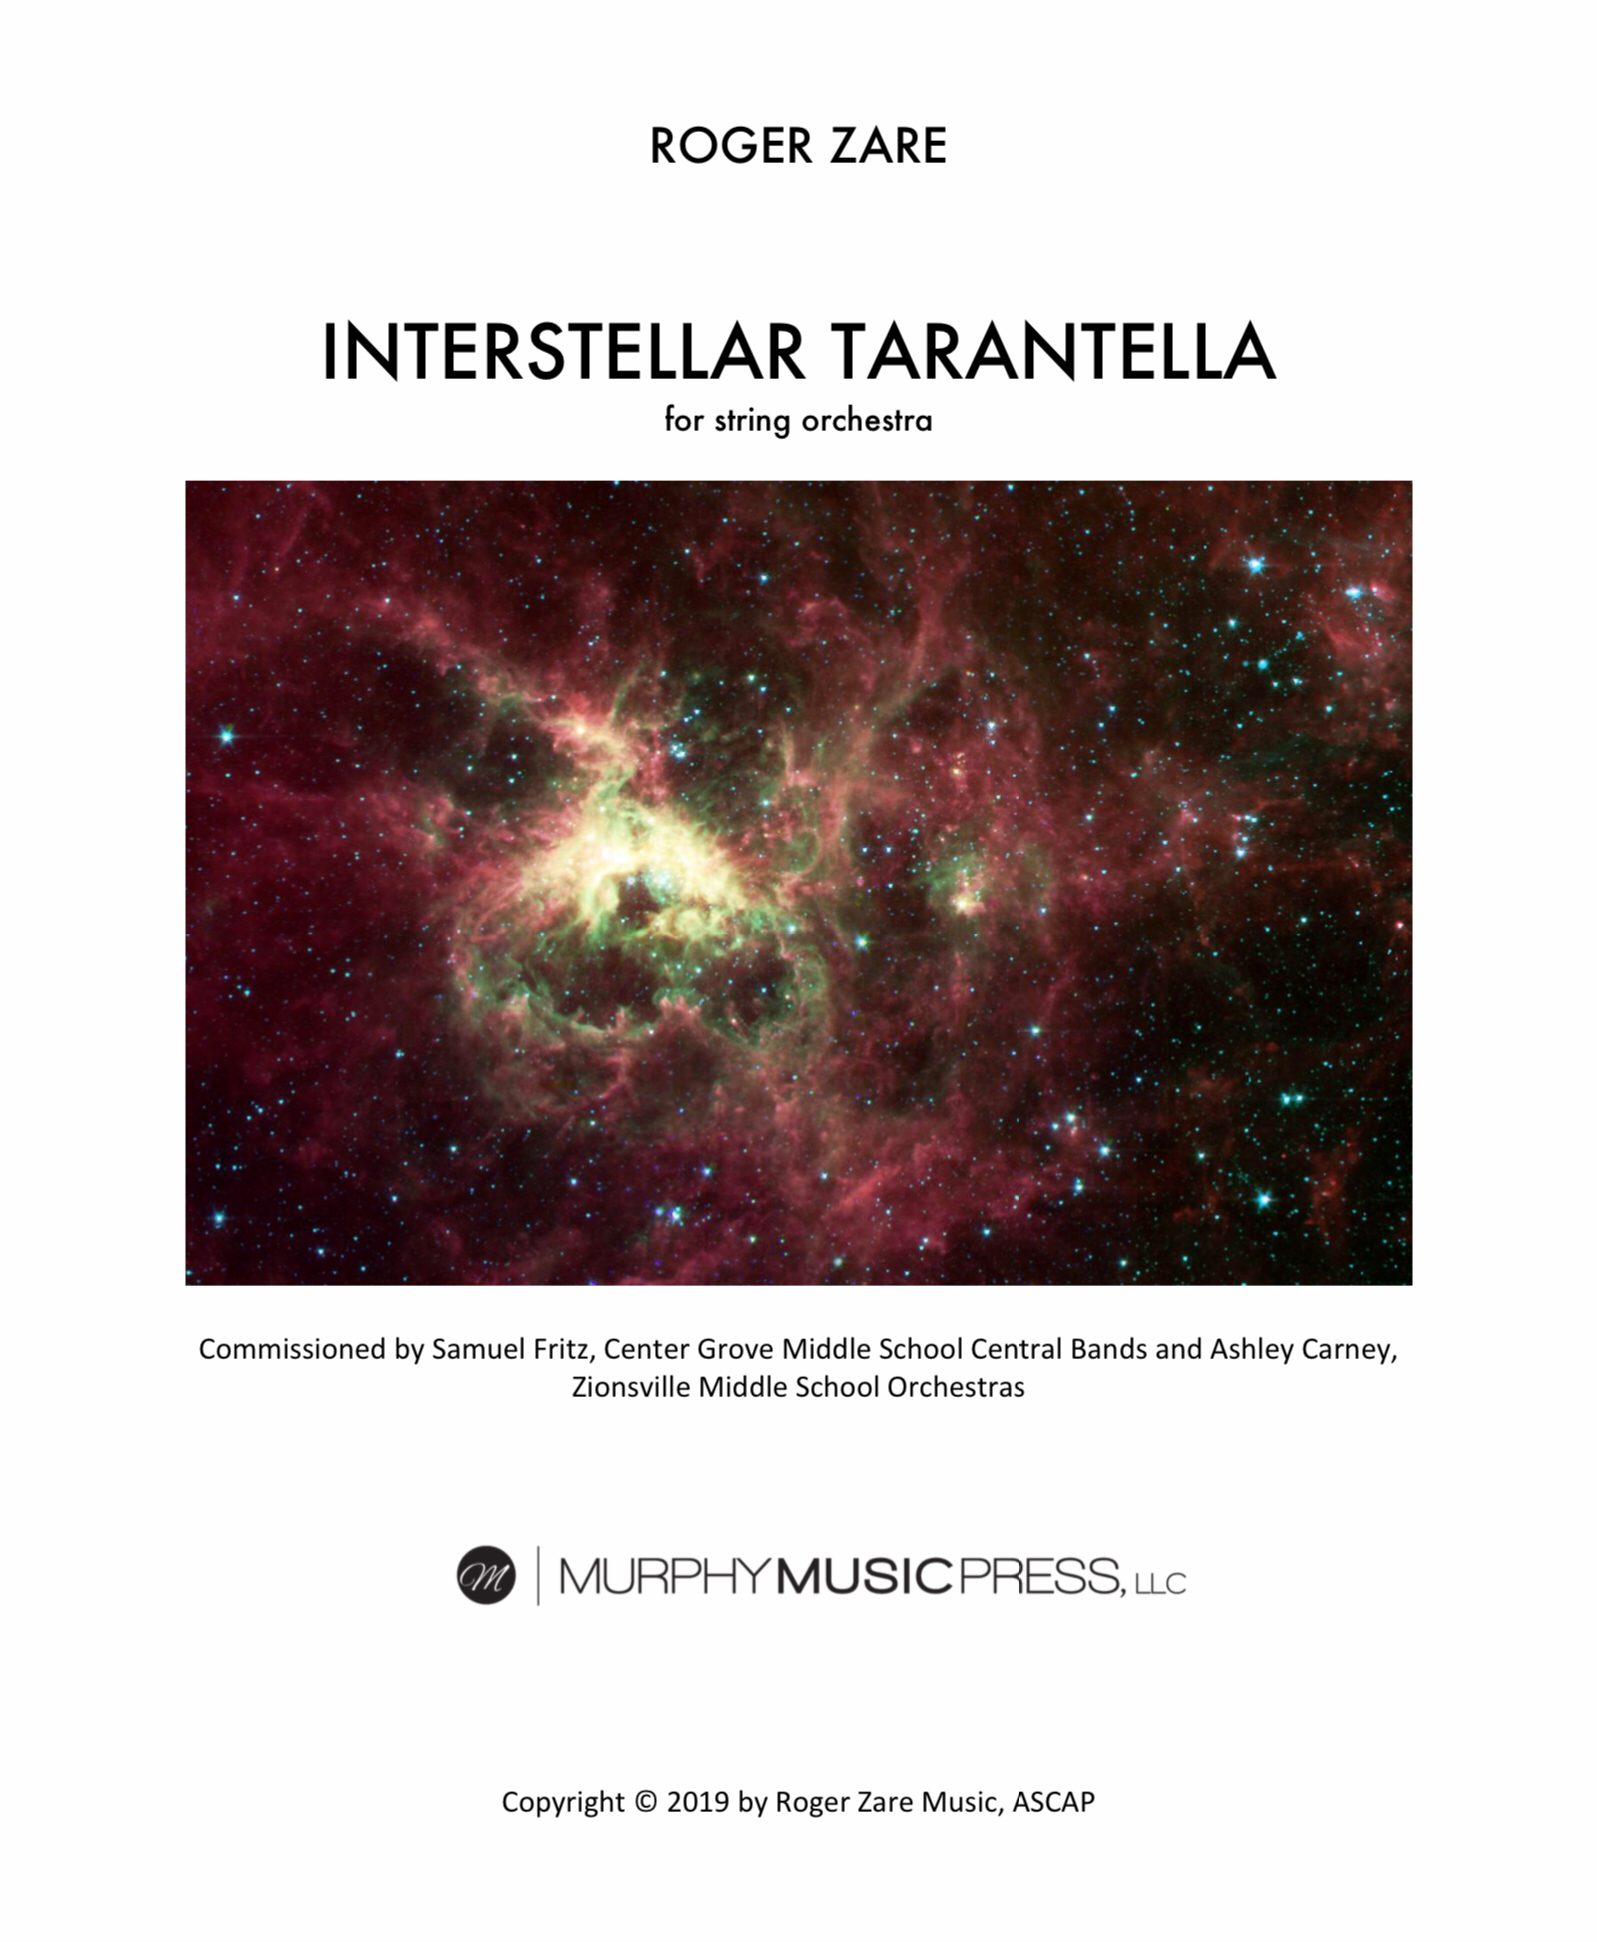 Interstellar Tarantella (String Orchestra Version) by Roger Zare